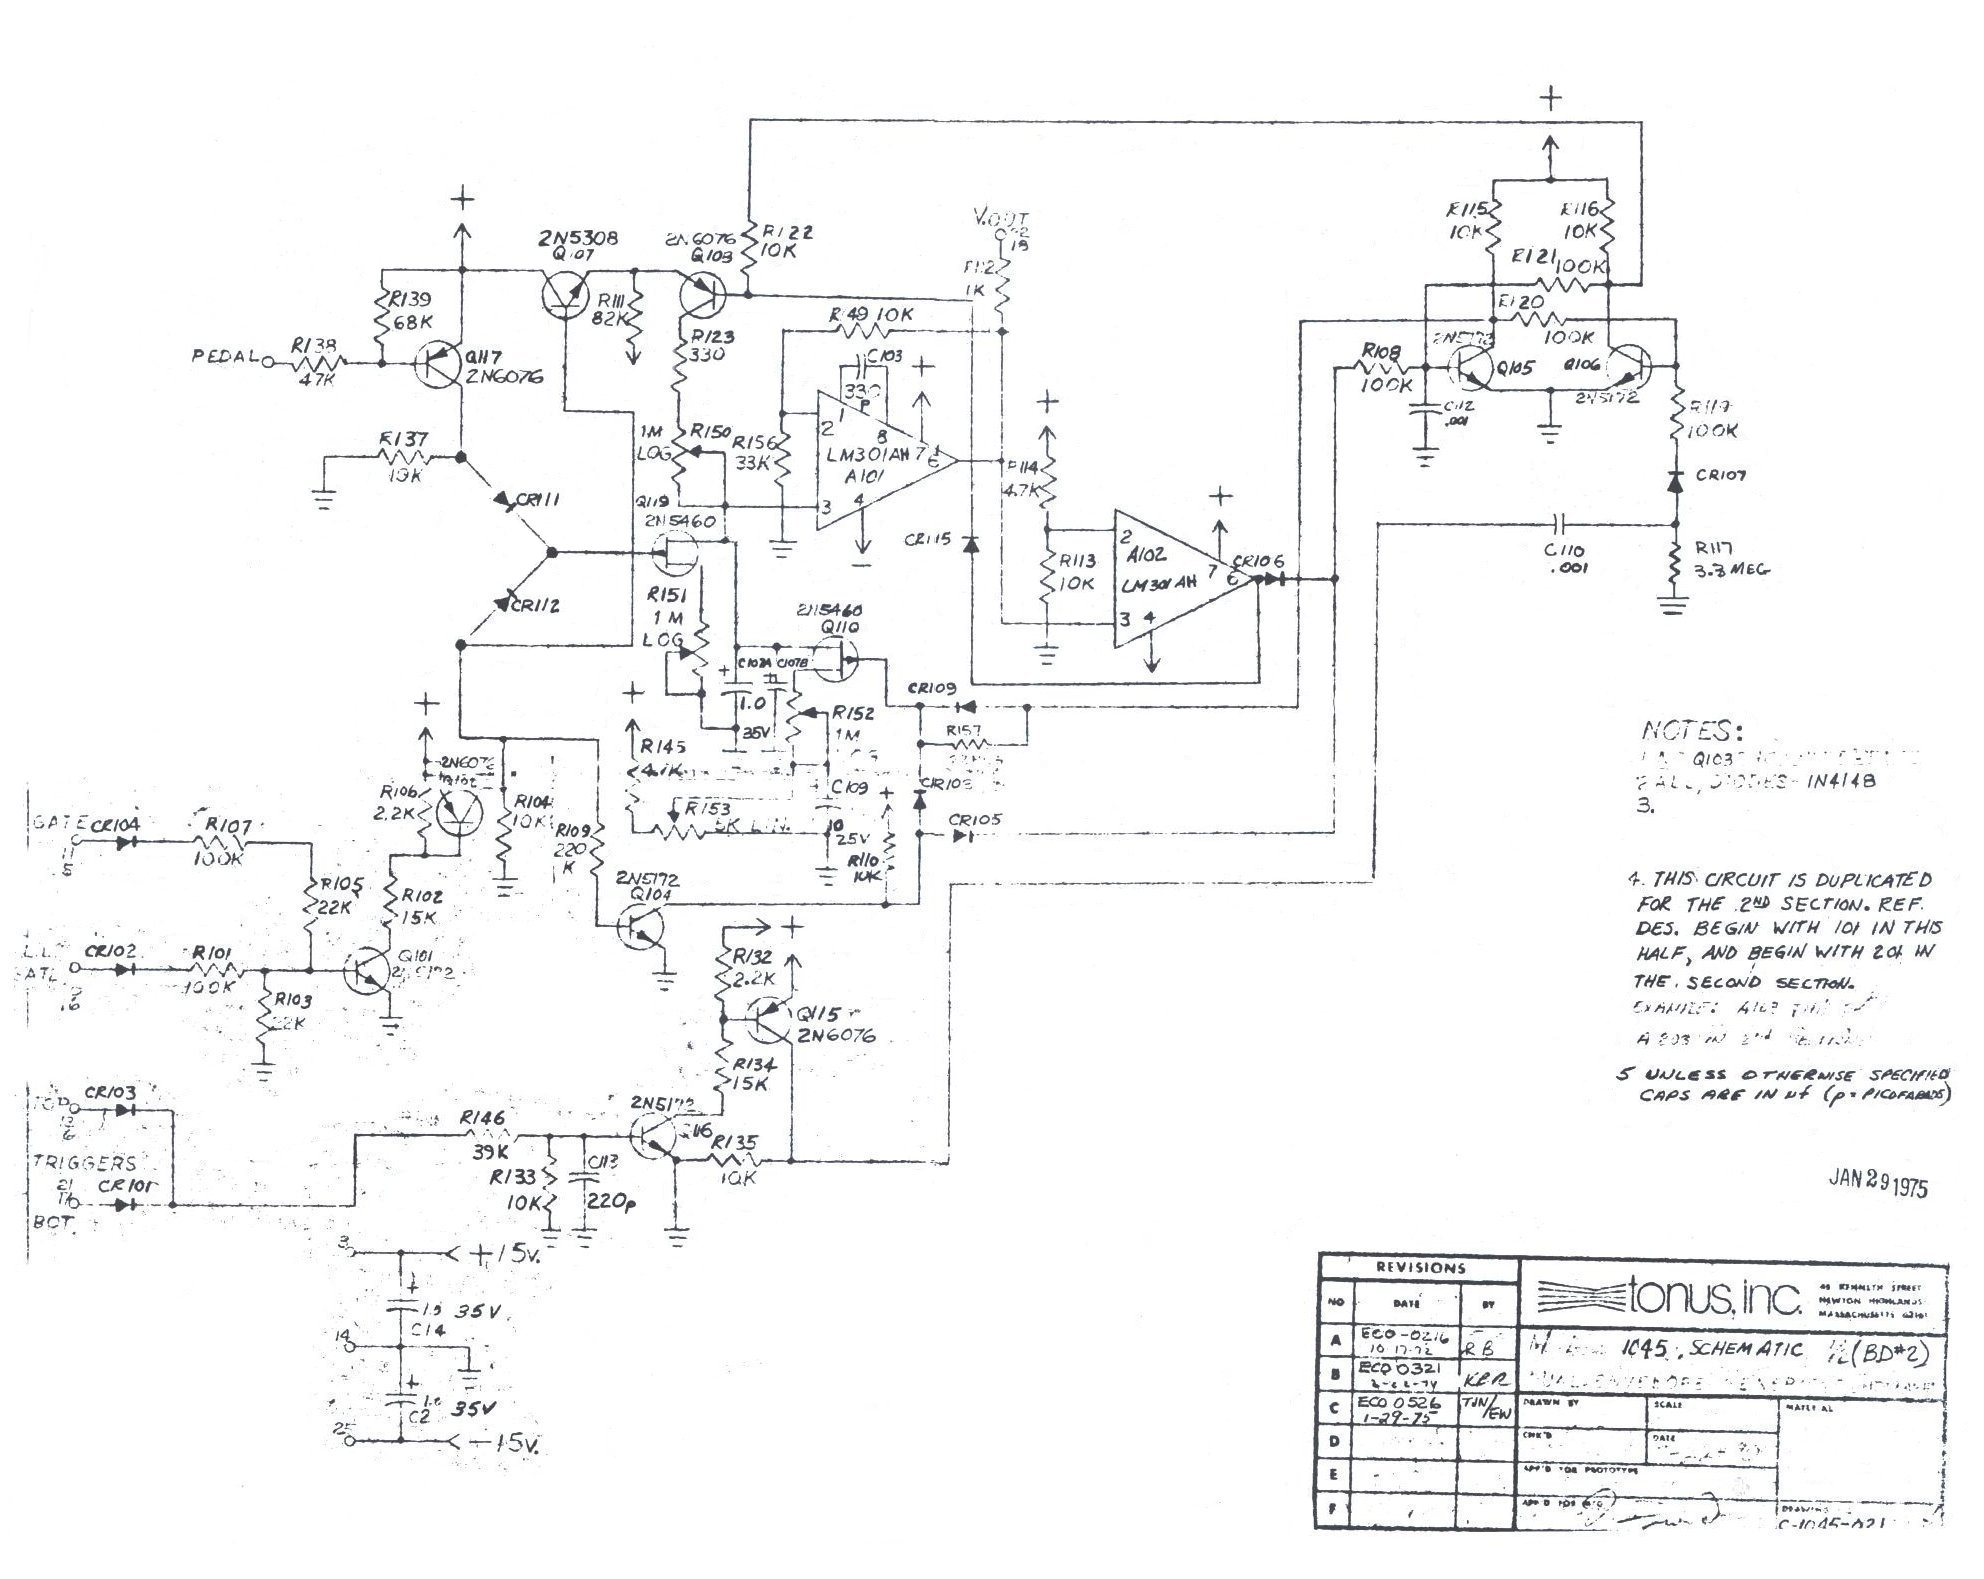 hight resolution of schematic envelope generator board click on image to download full sized version